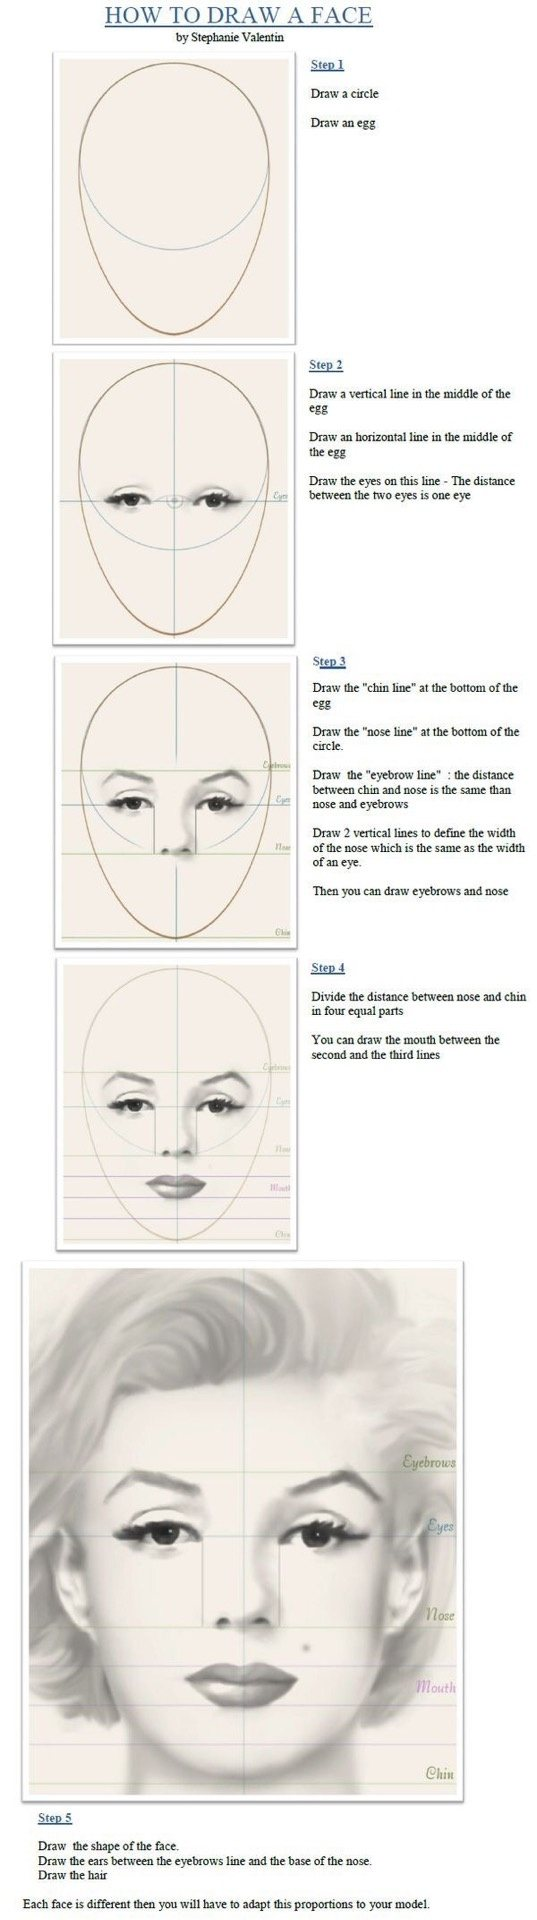 how to draw a human face side view